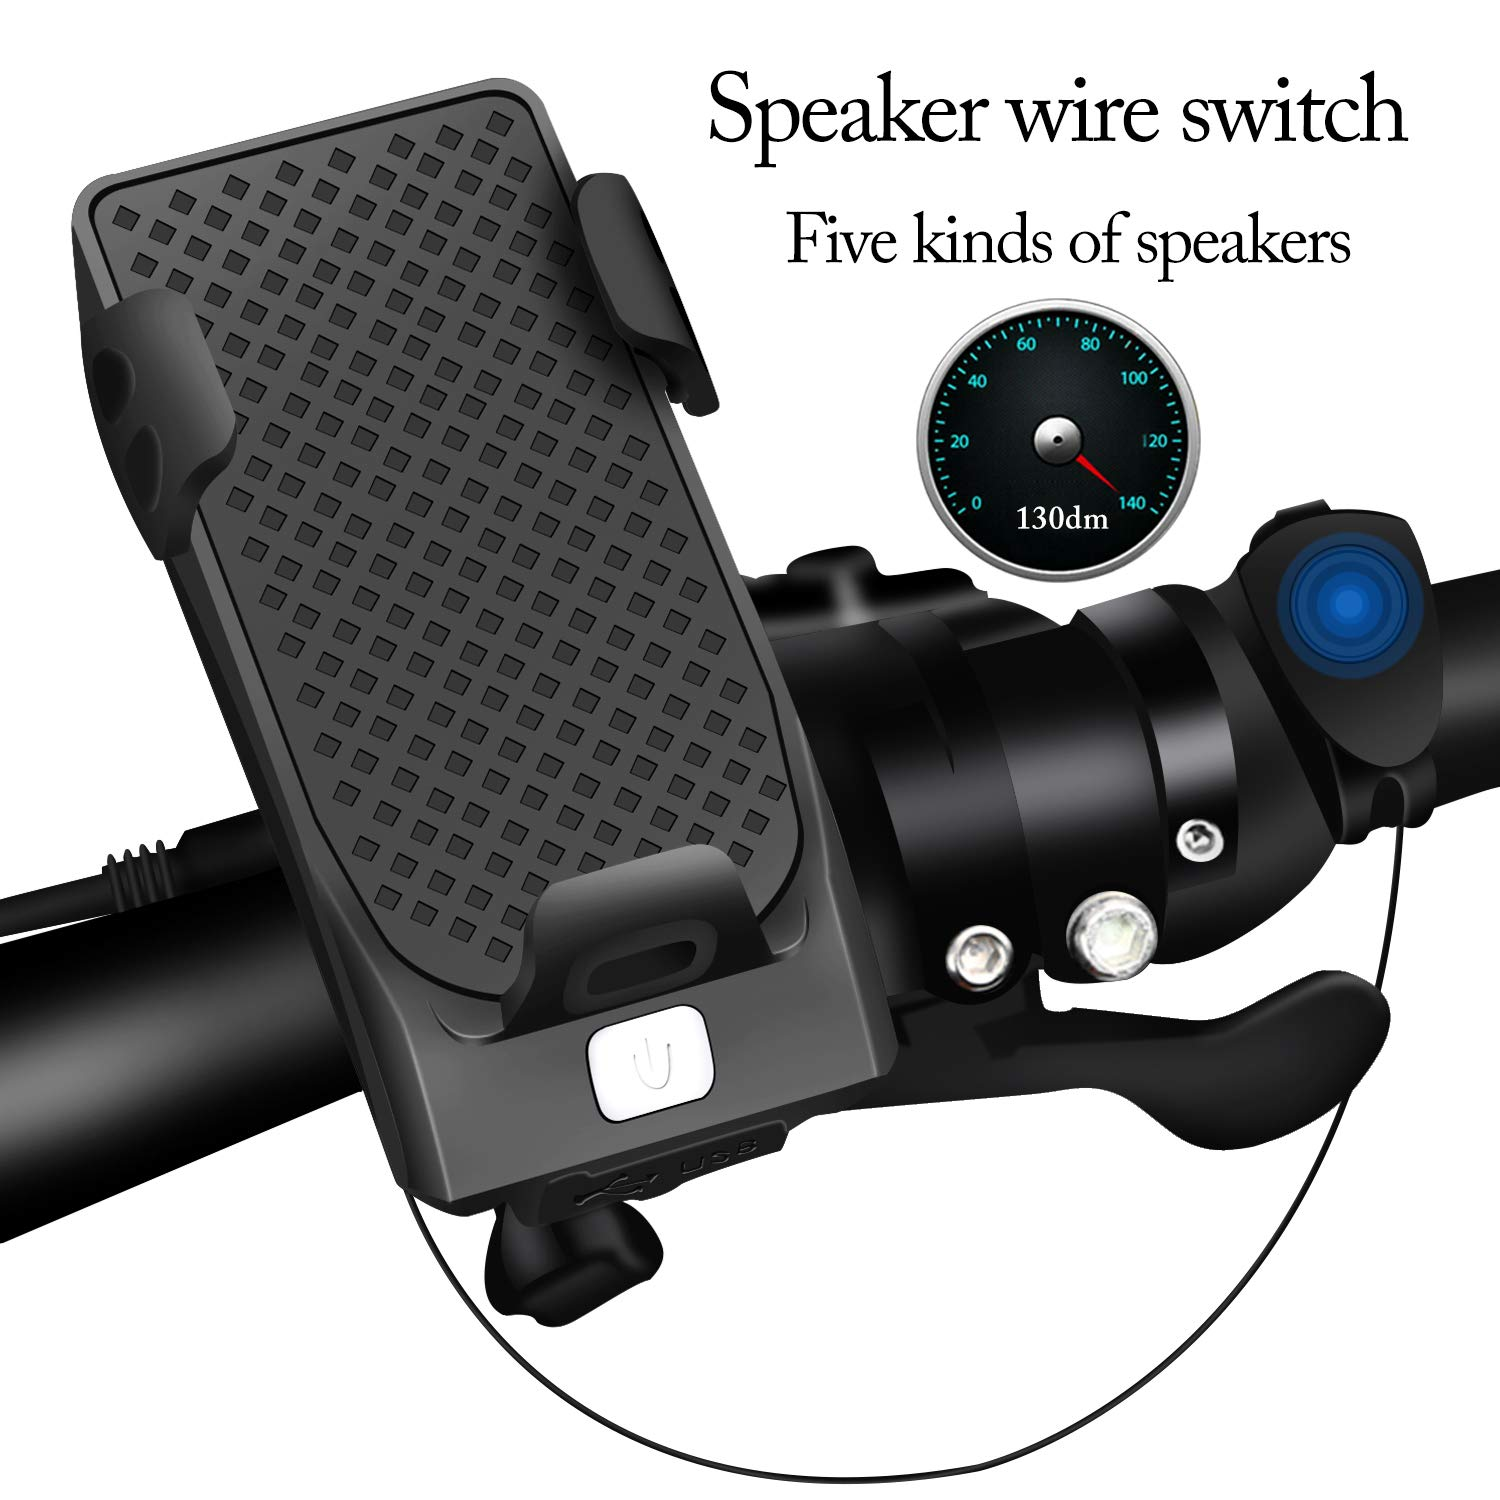 Cycling Safety Commuter Flashlight USB Rechargeable and Easy to Install Bicycle Light LED Light Bike Horn and Power Bank Frontlight with 3 Modes Tsuinz Bicycle Light Waterproof Cycling Lights